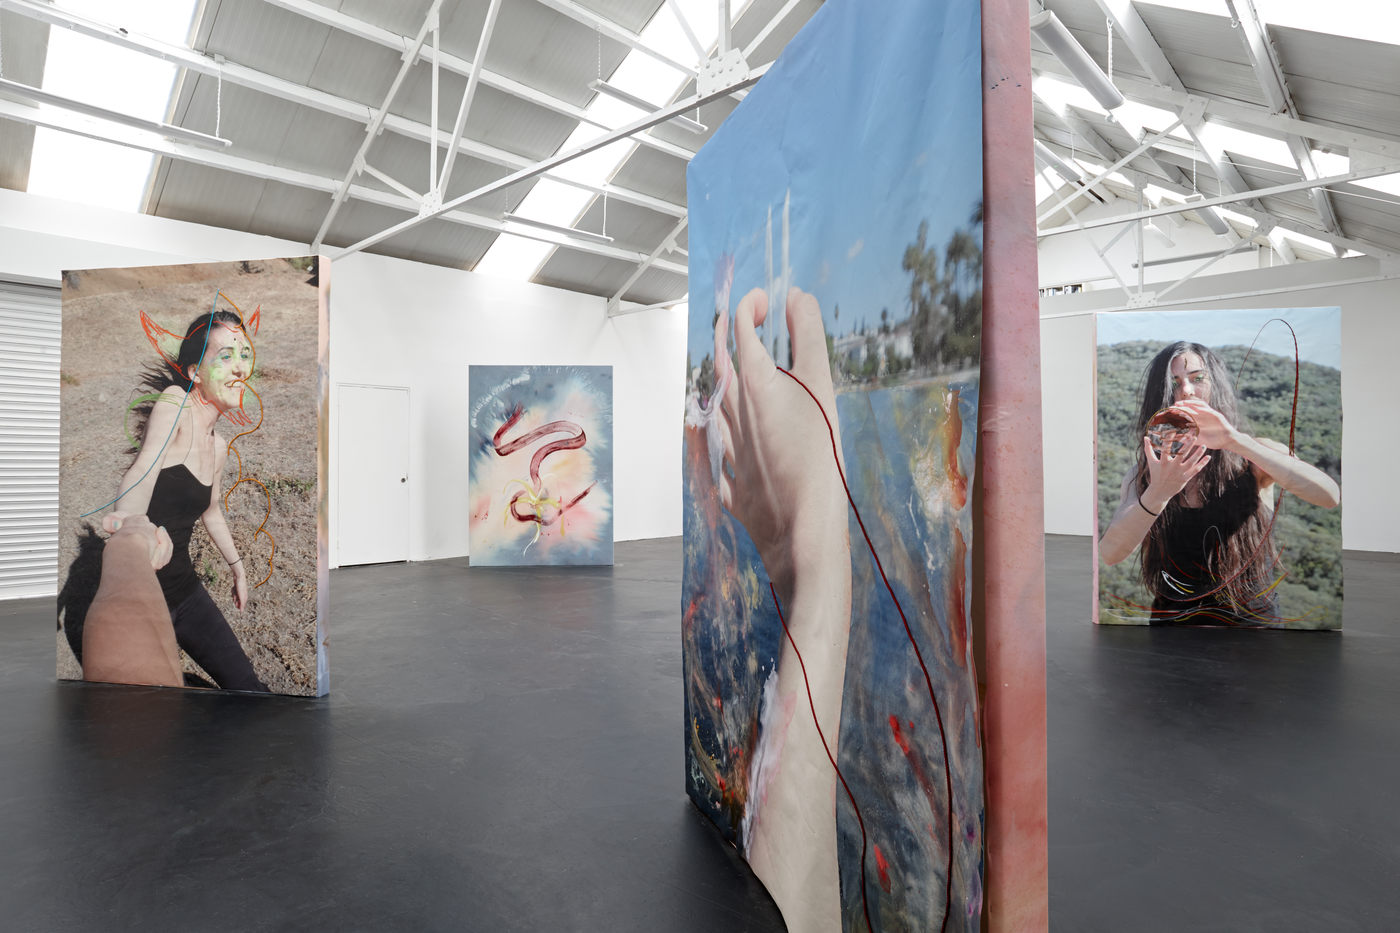 09. Nora Berman - Charm - Installation View IX